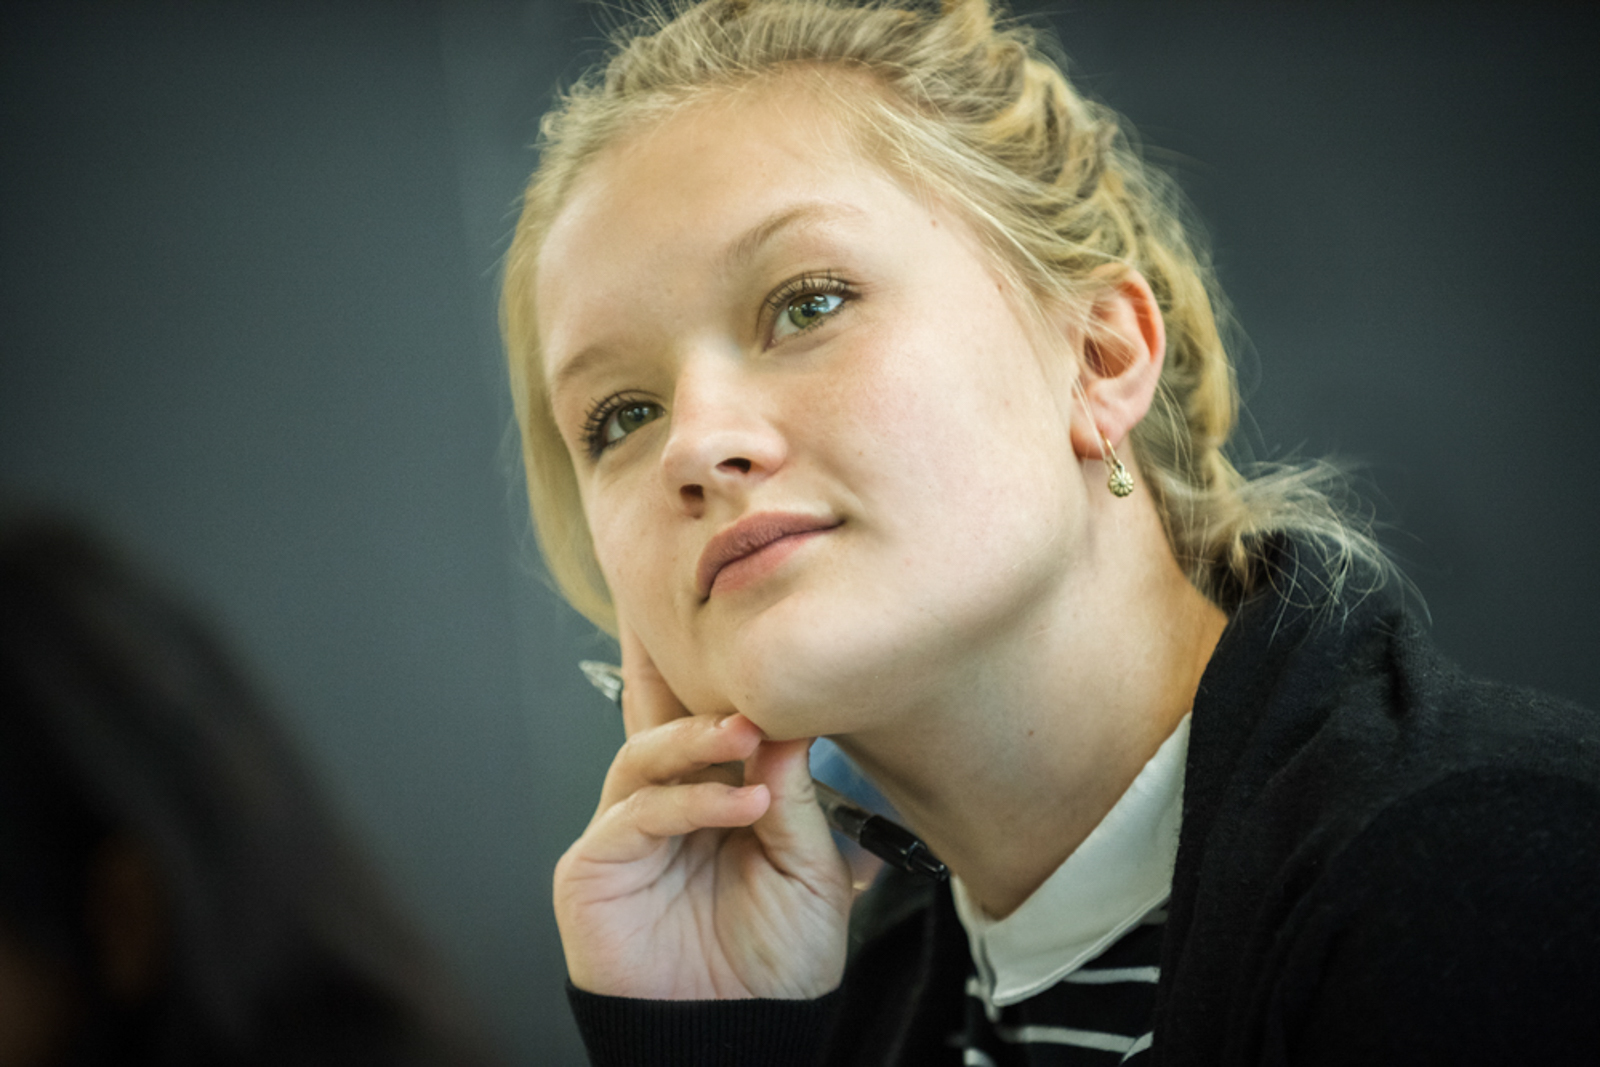 Young student in class paying close attention